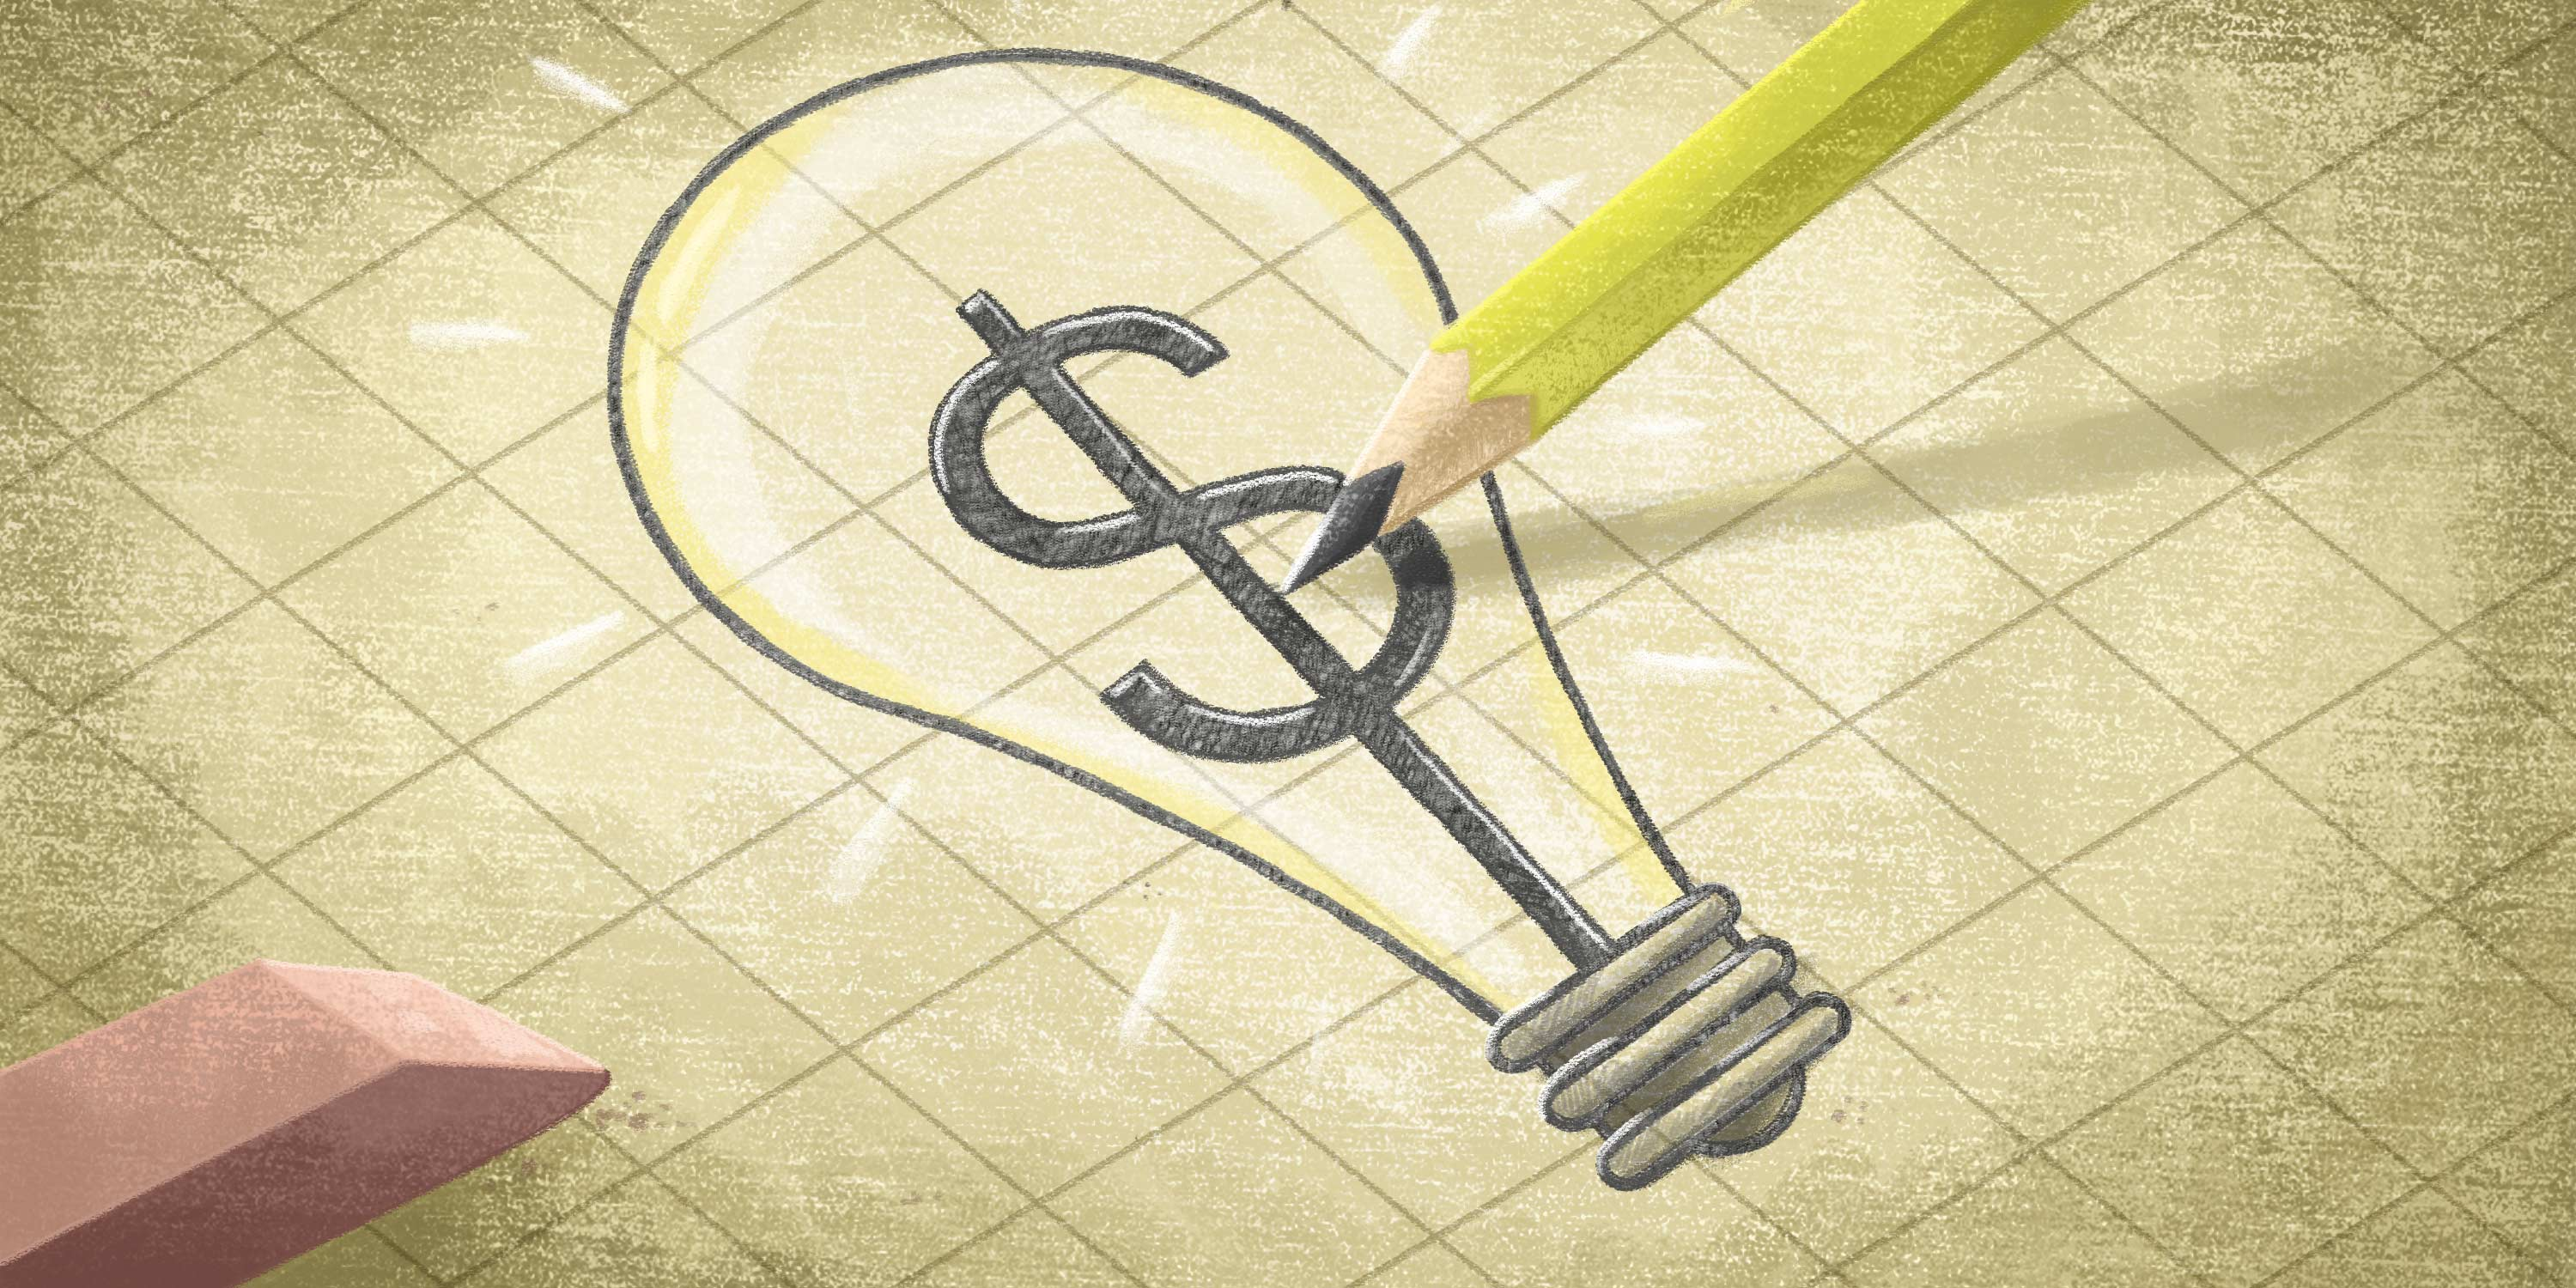 lightbulb showing innovation sketched on graph paper